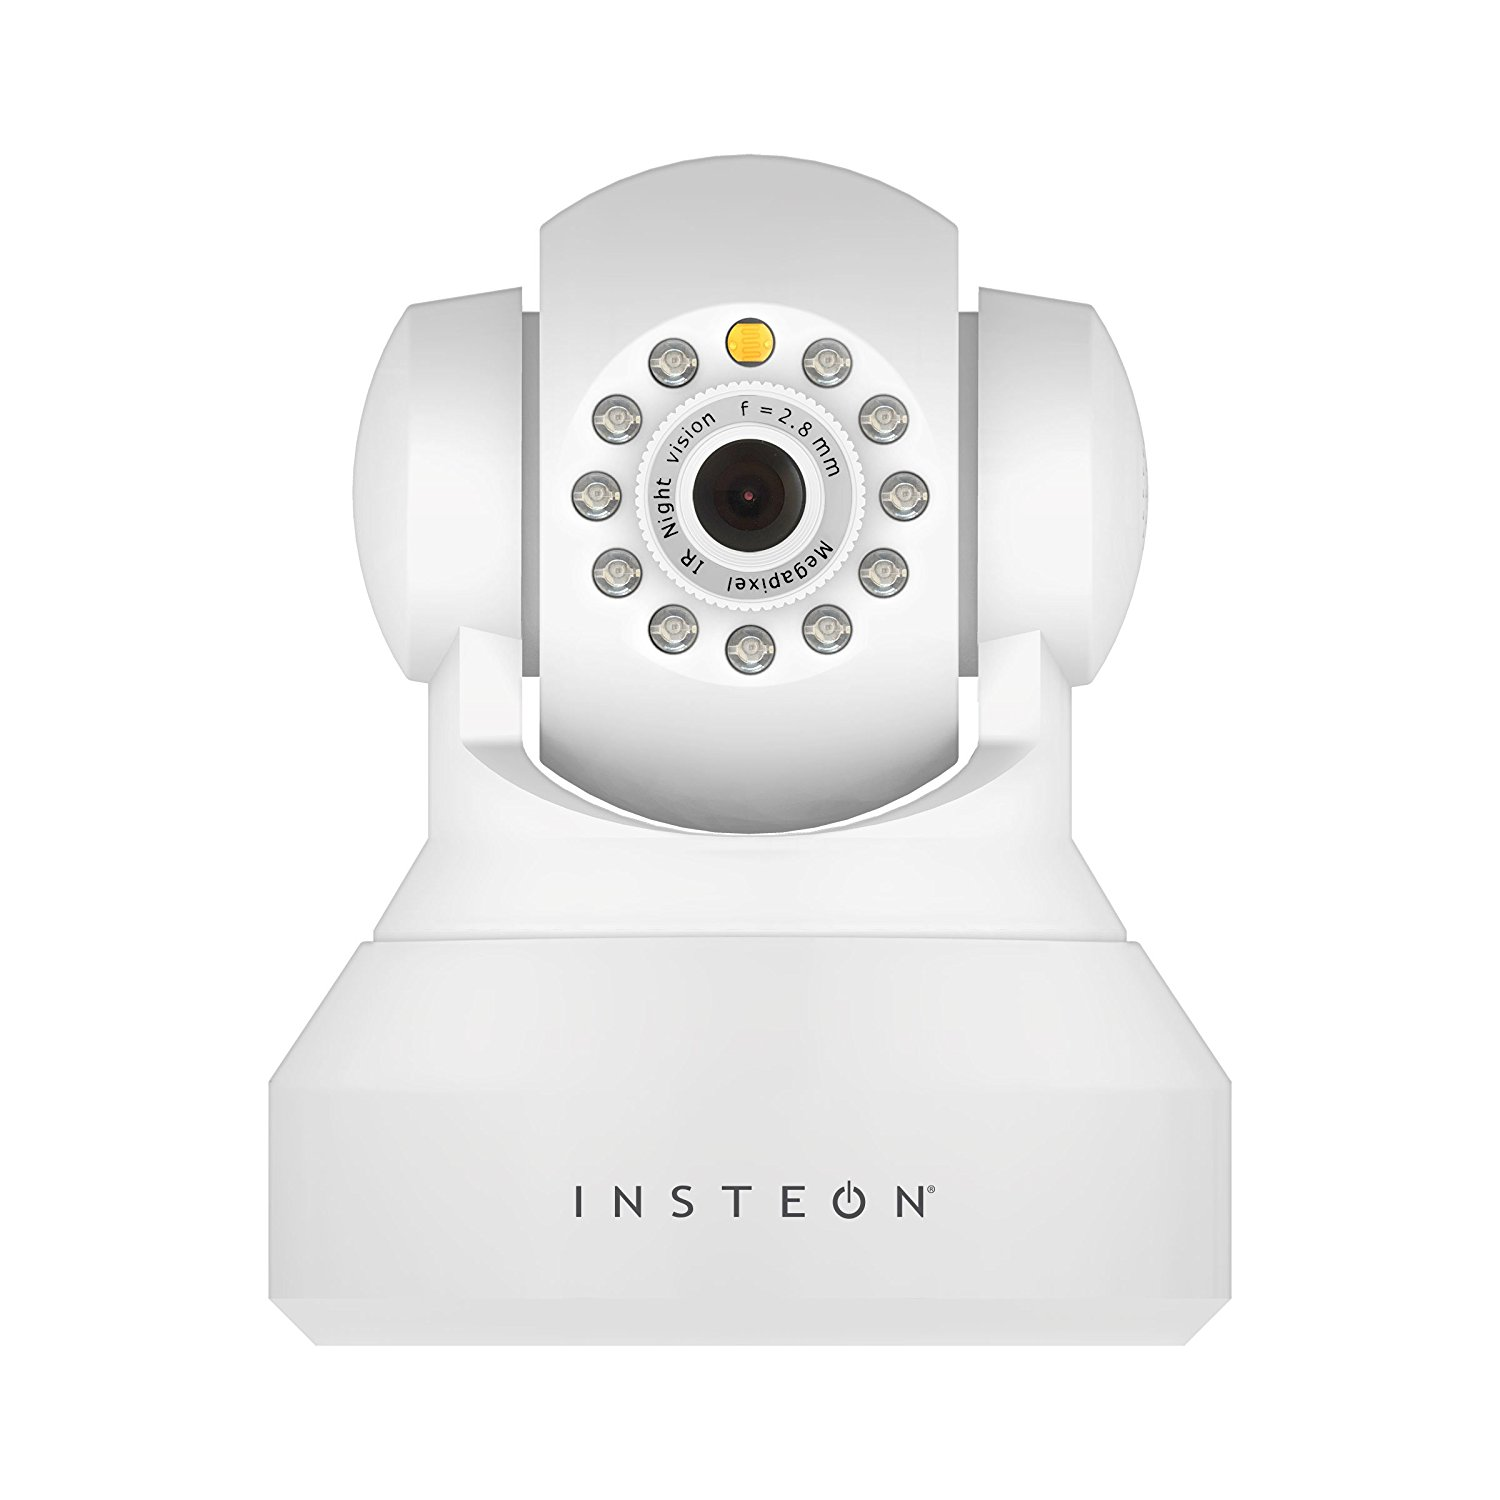 Insteon Smart Security Cameras